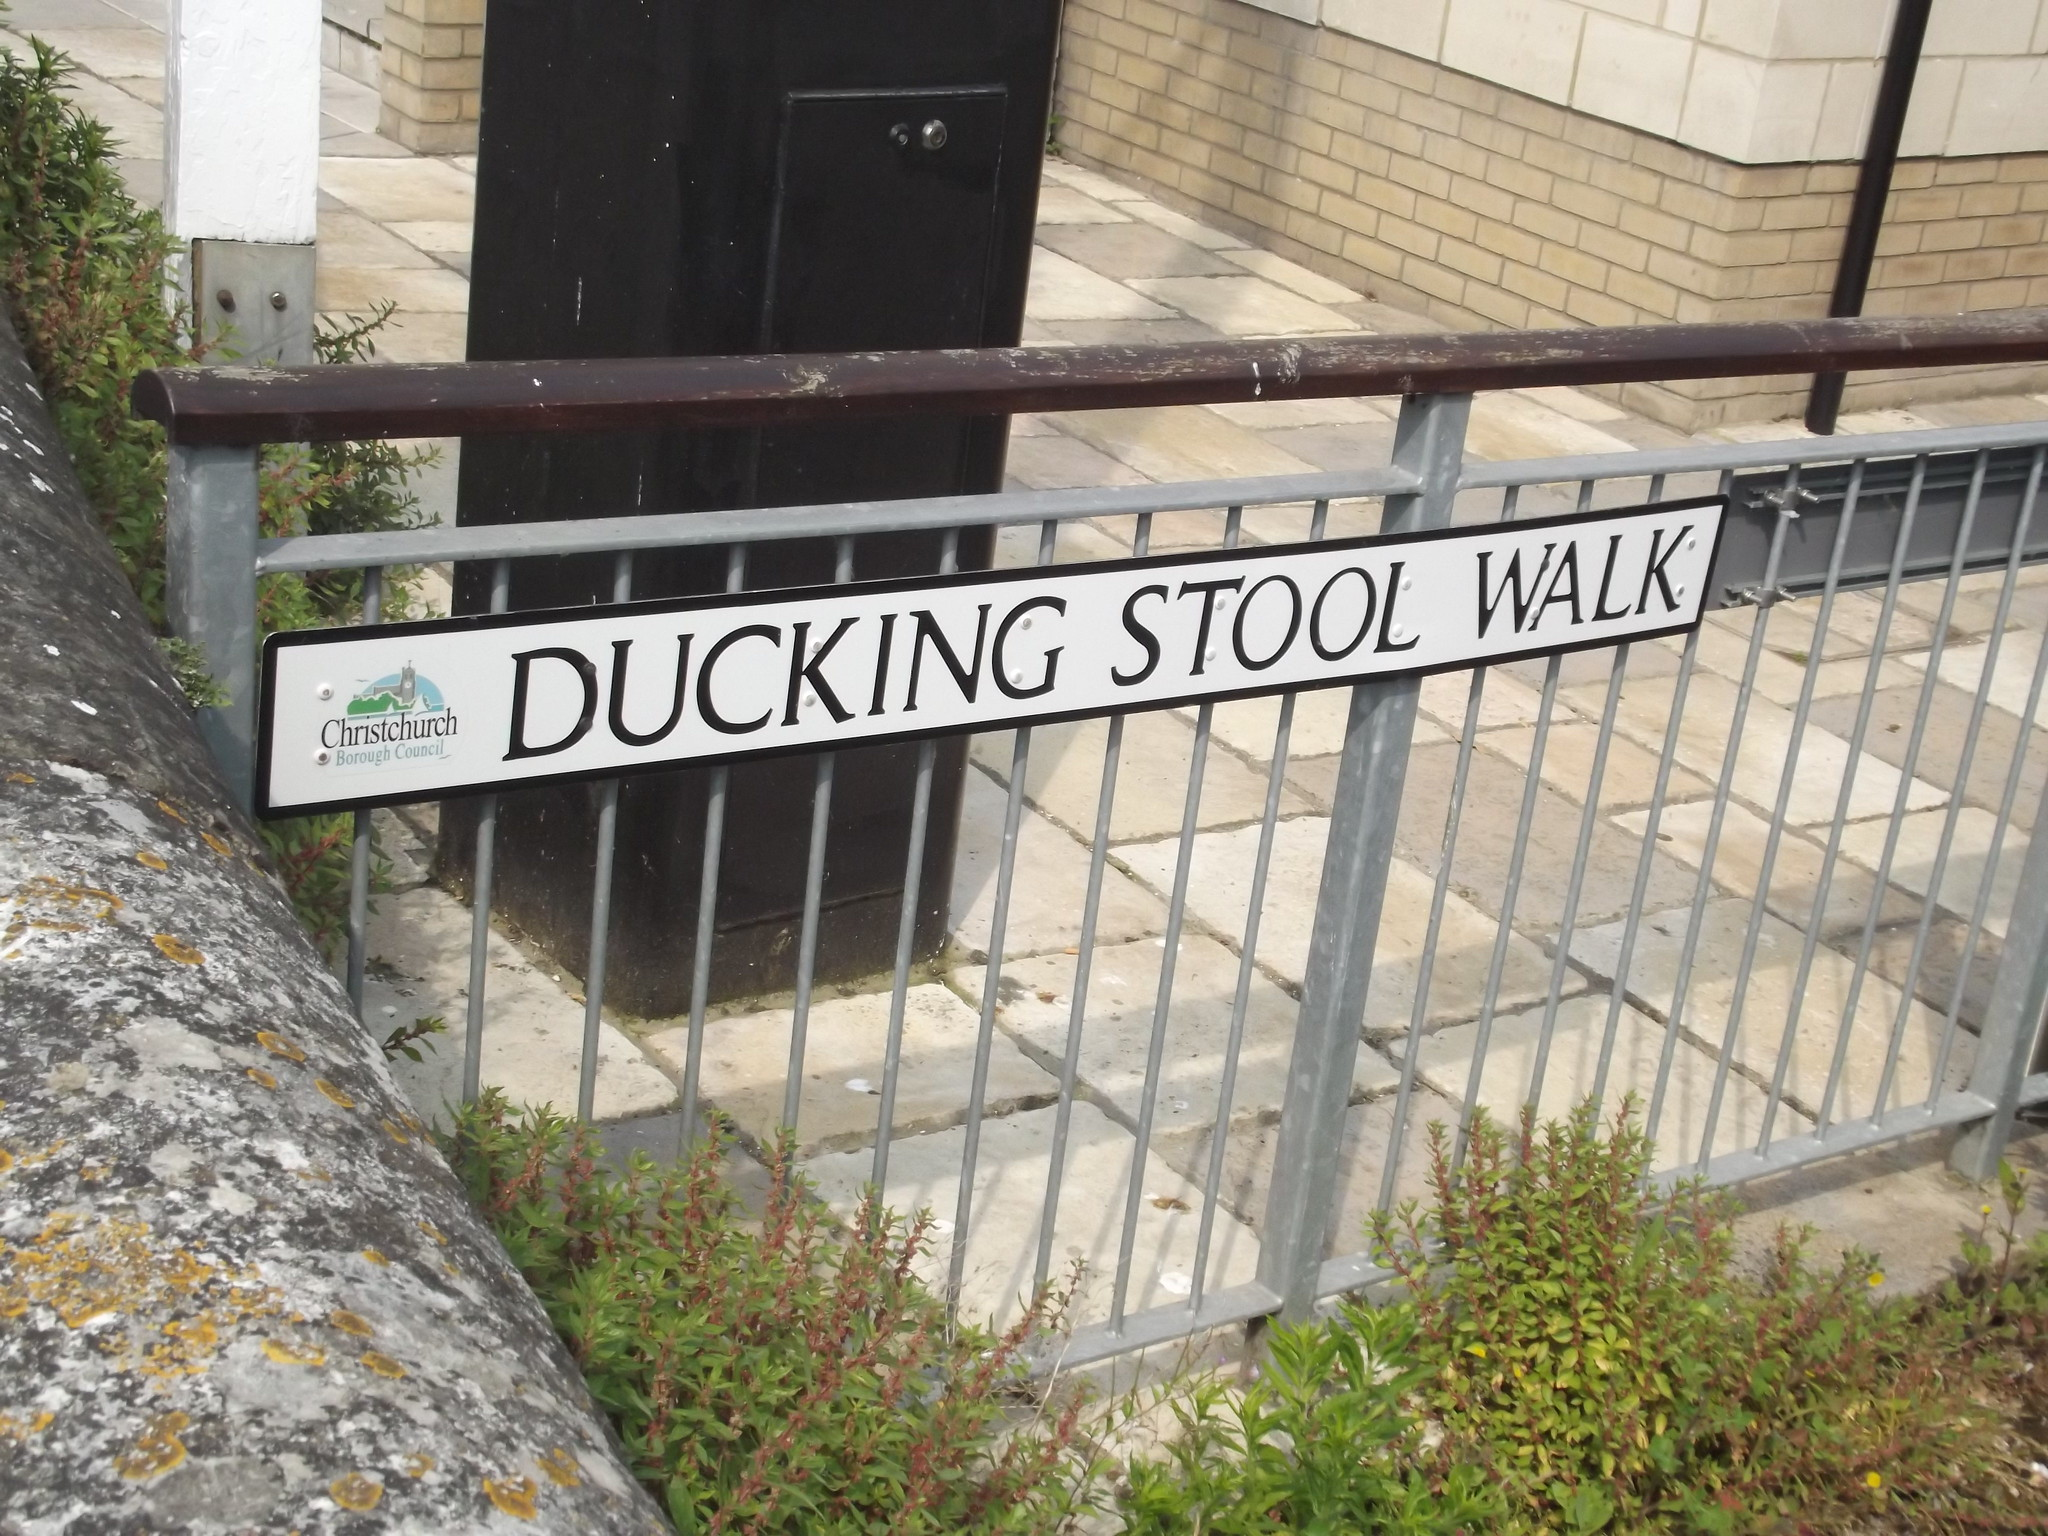 Ducking Stool Walk Christchurch Road Sign Flickr